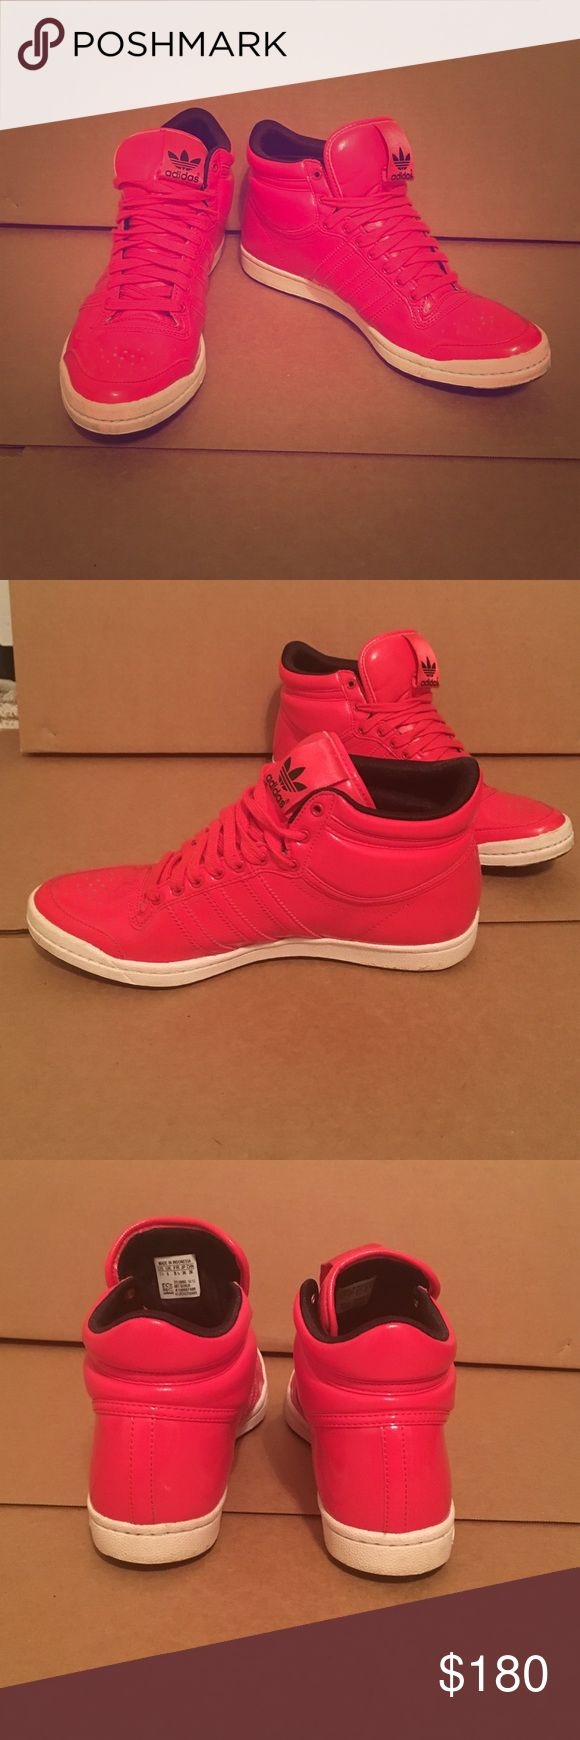 Very Rare adidas sleek series high tops size 7.5 Very rare Adidas sleek series high tops in red. These were bought in Germany. Only worn a few times in almost new condition. Adidas Shoes Sneakers